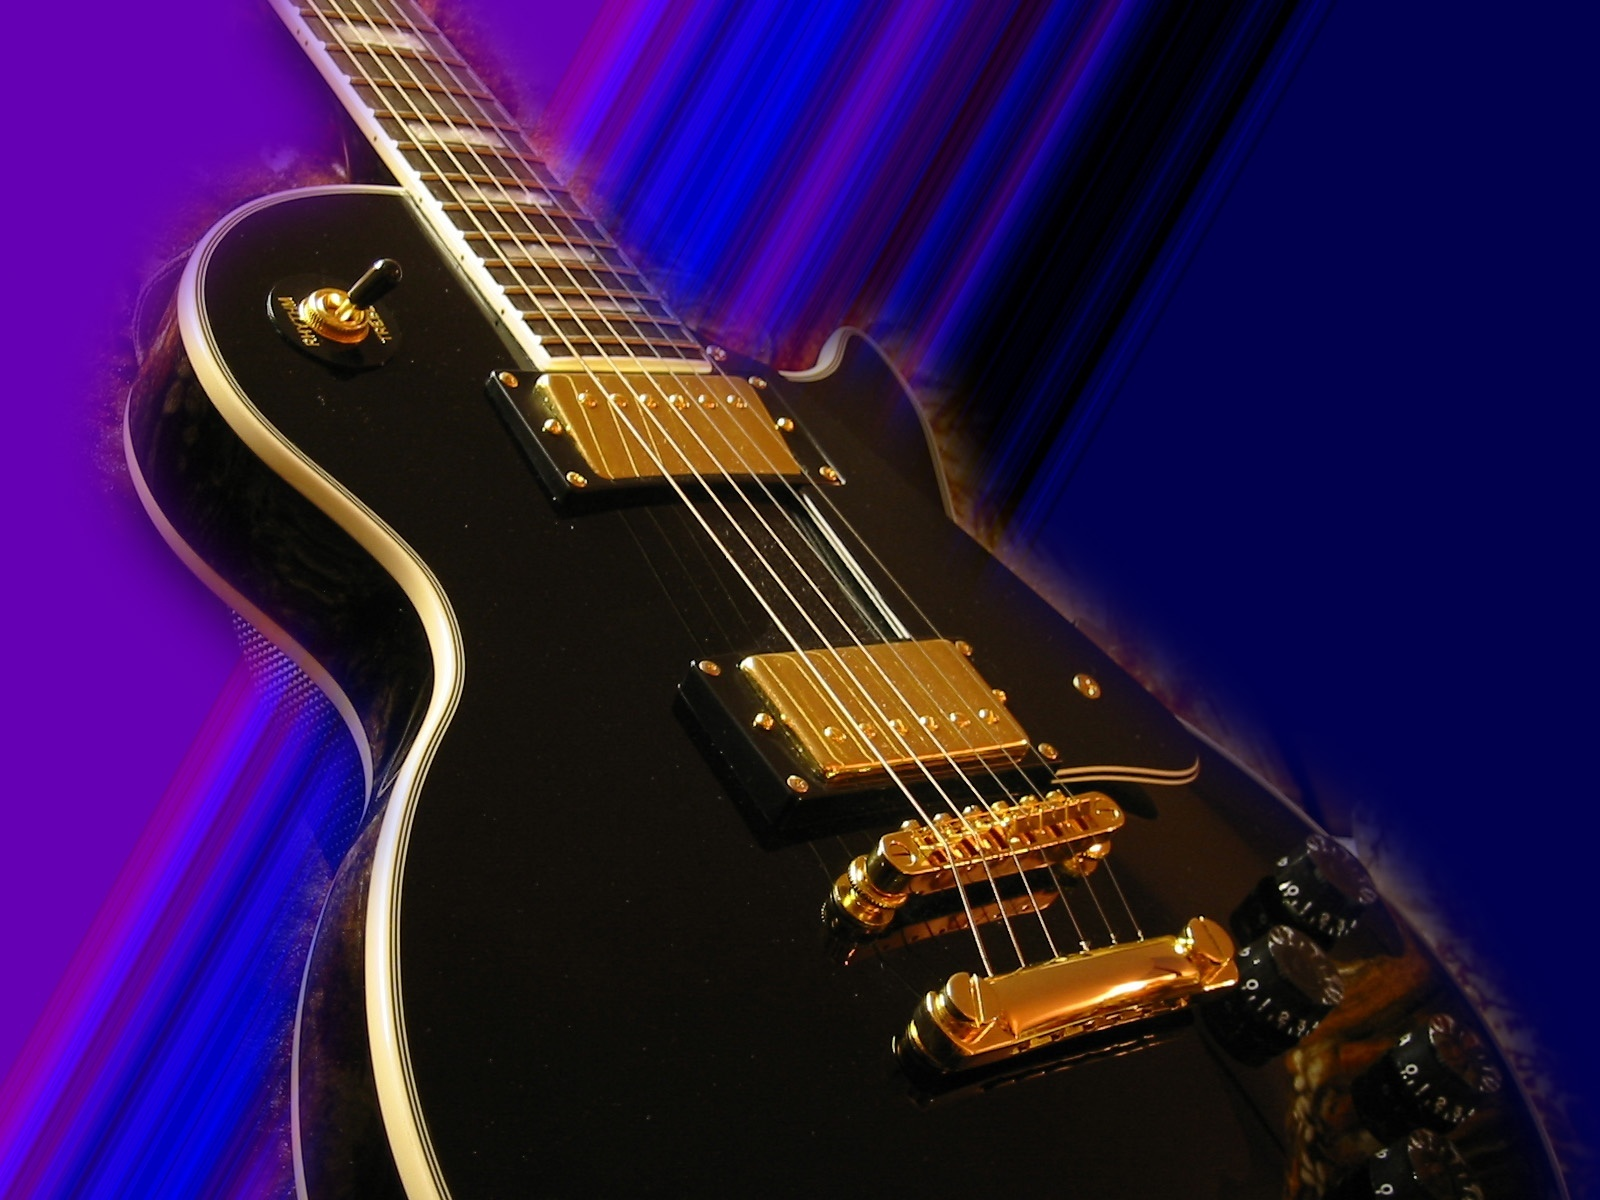 Wallpapers Guitarras [Hd]   Imgenes   Taringa 1600x1200